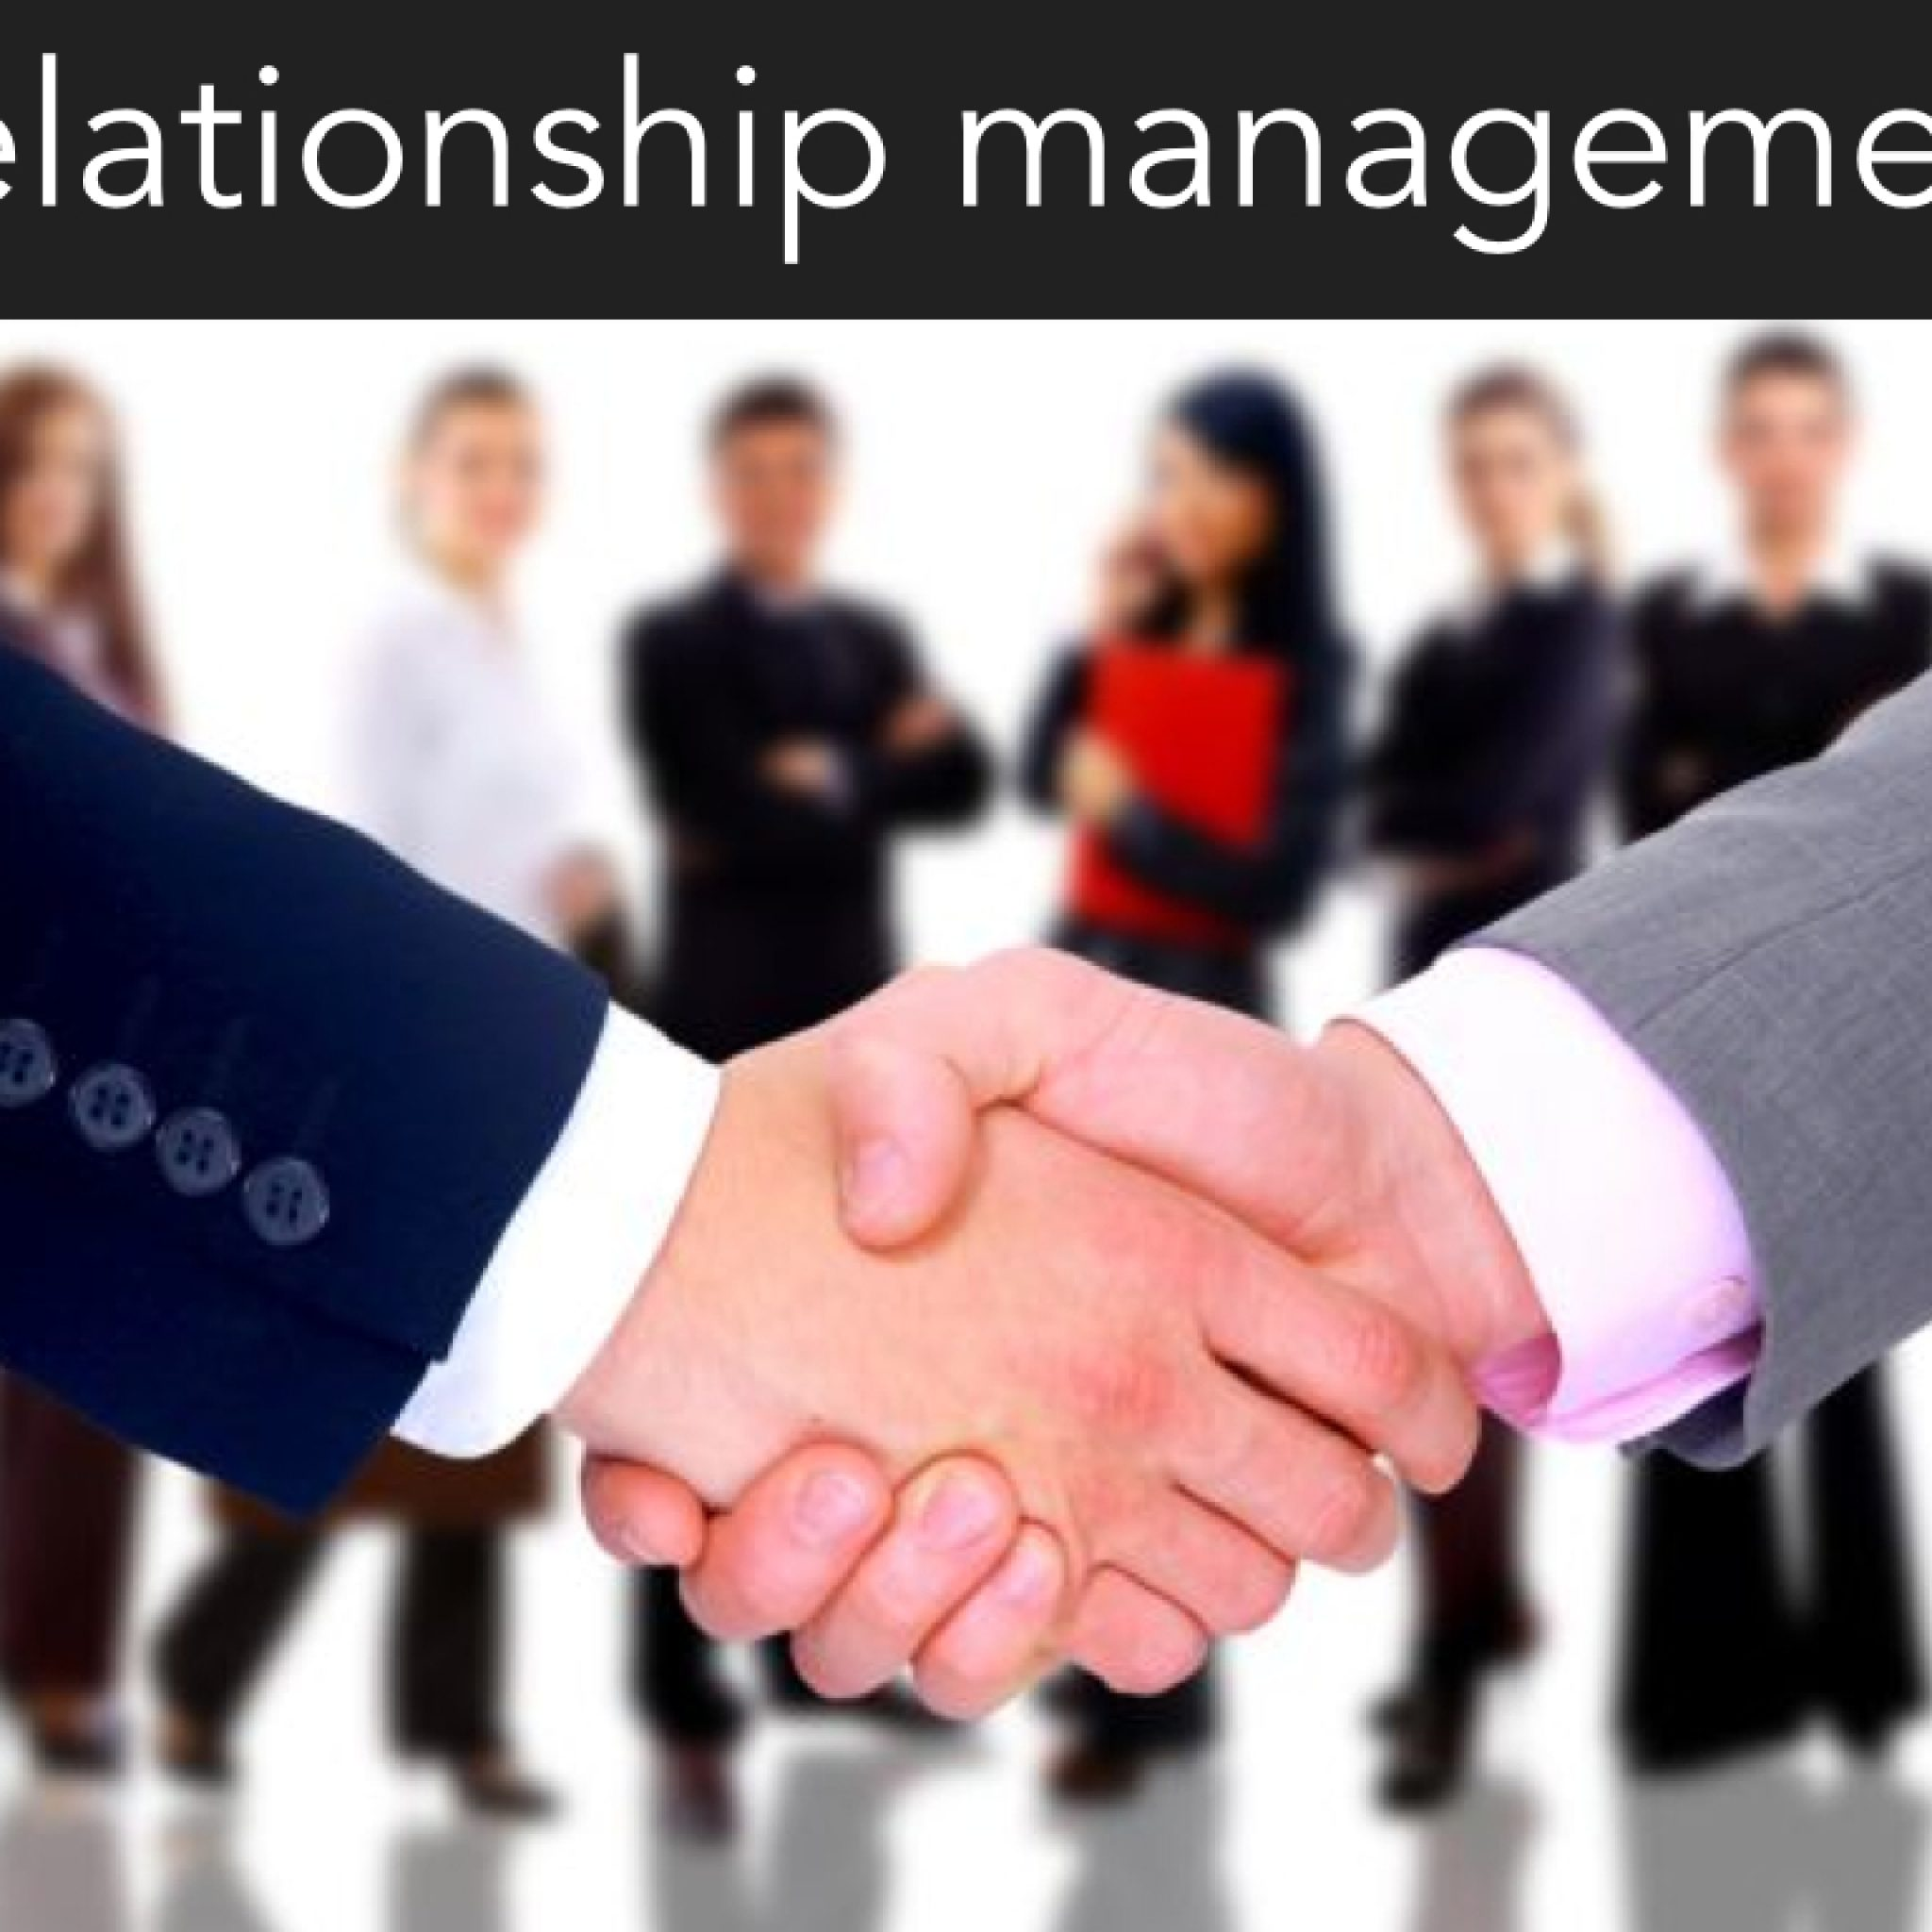 Relationship management an Emotional Intelligence imperative